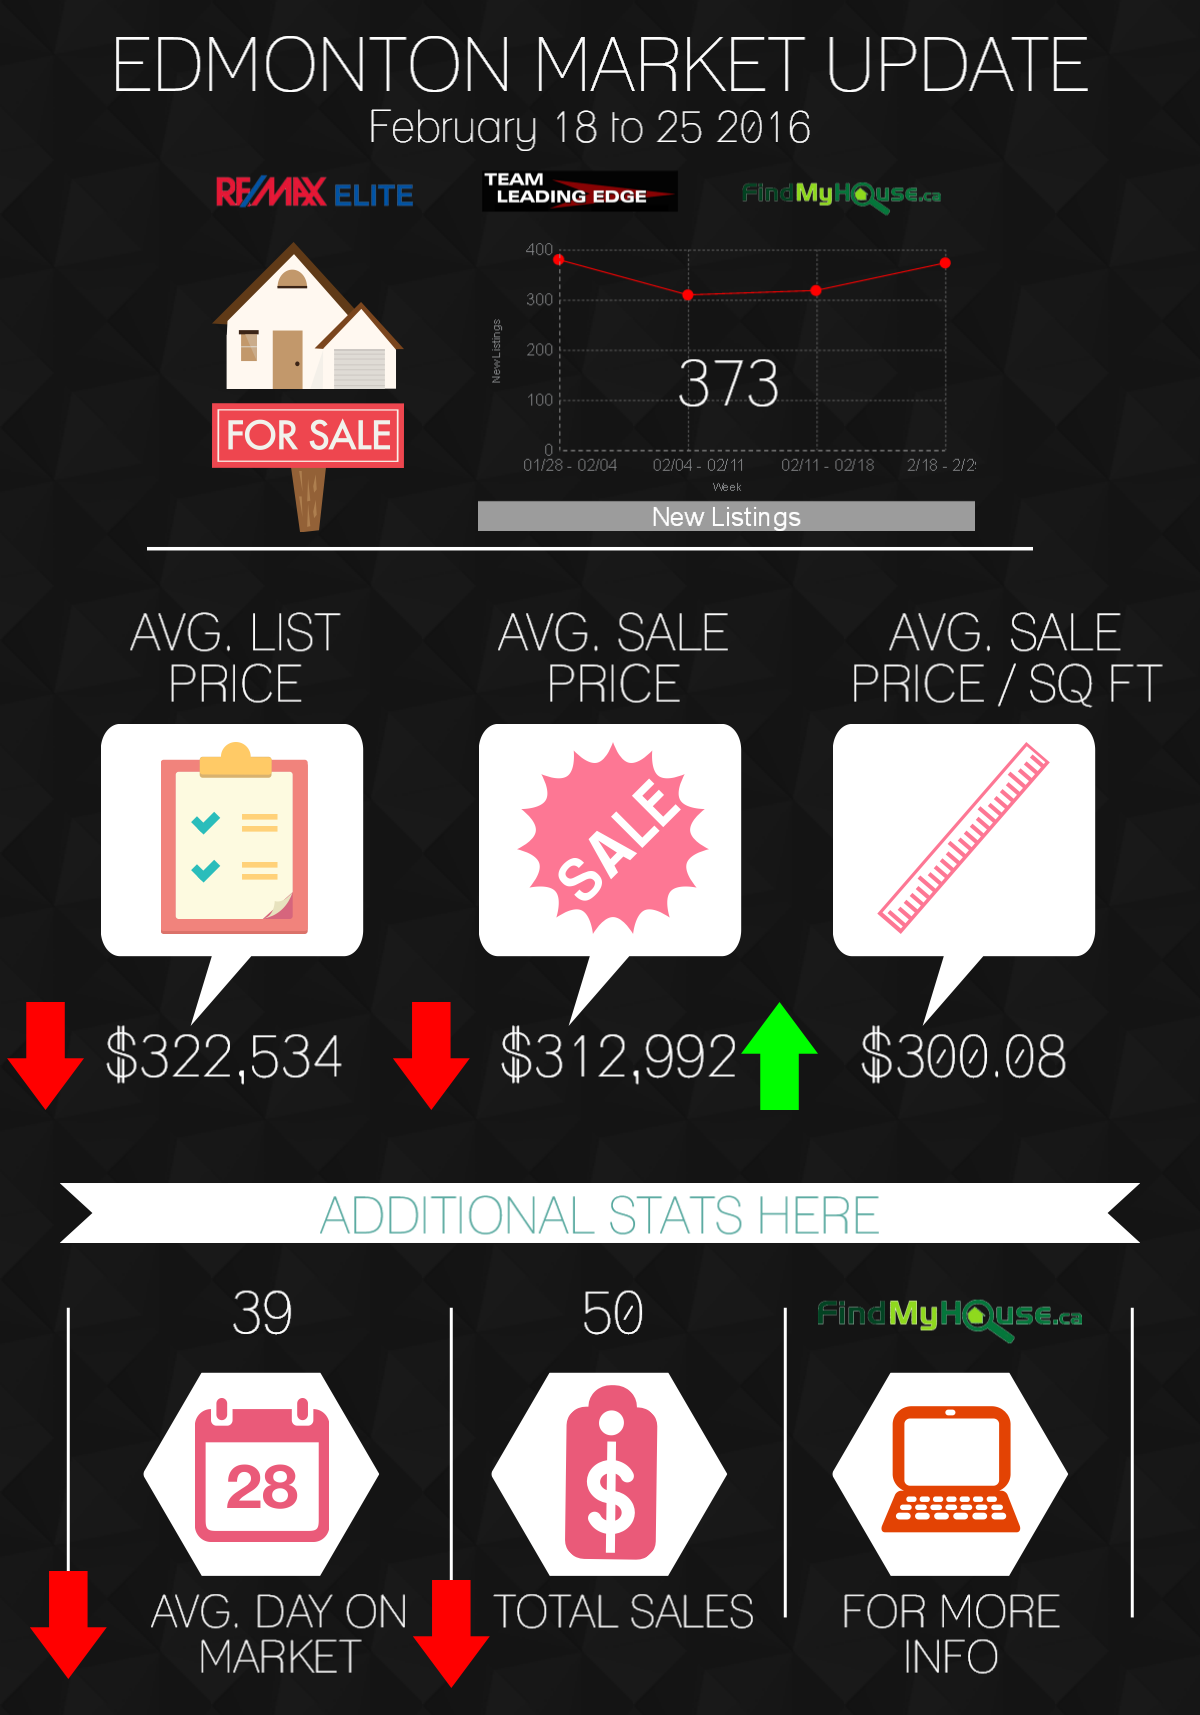 Edmonton real estate market update feb 18 - 25 2016